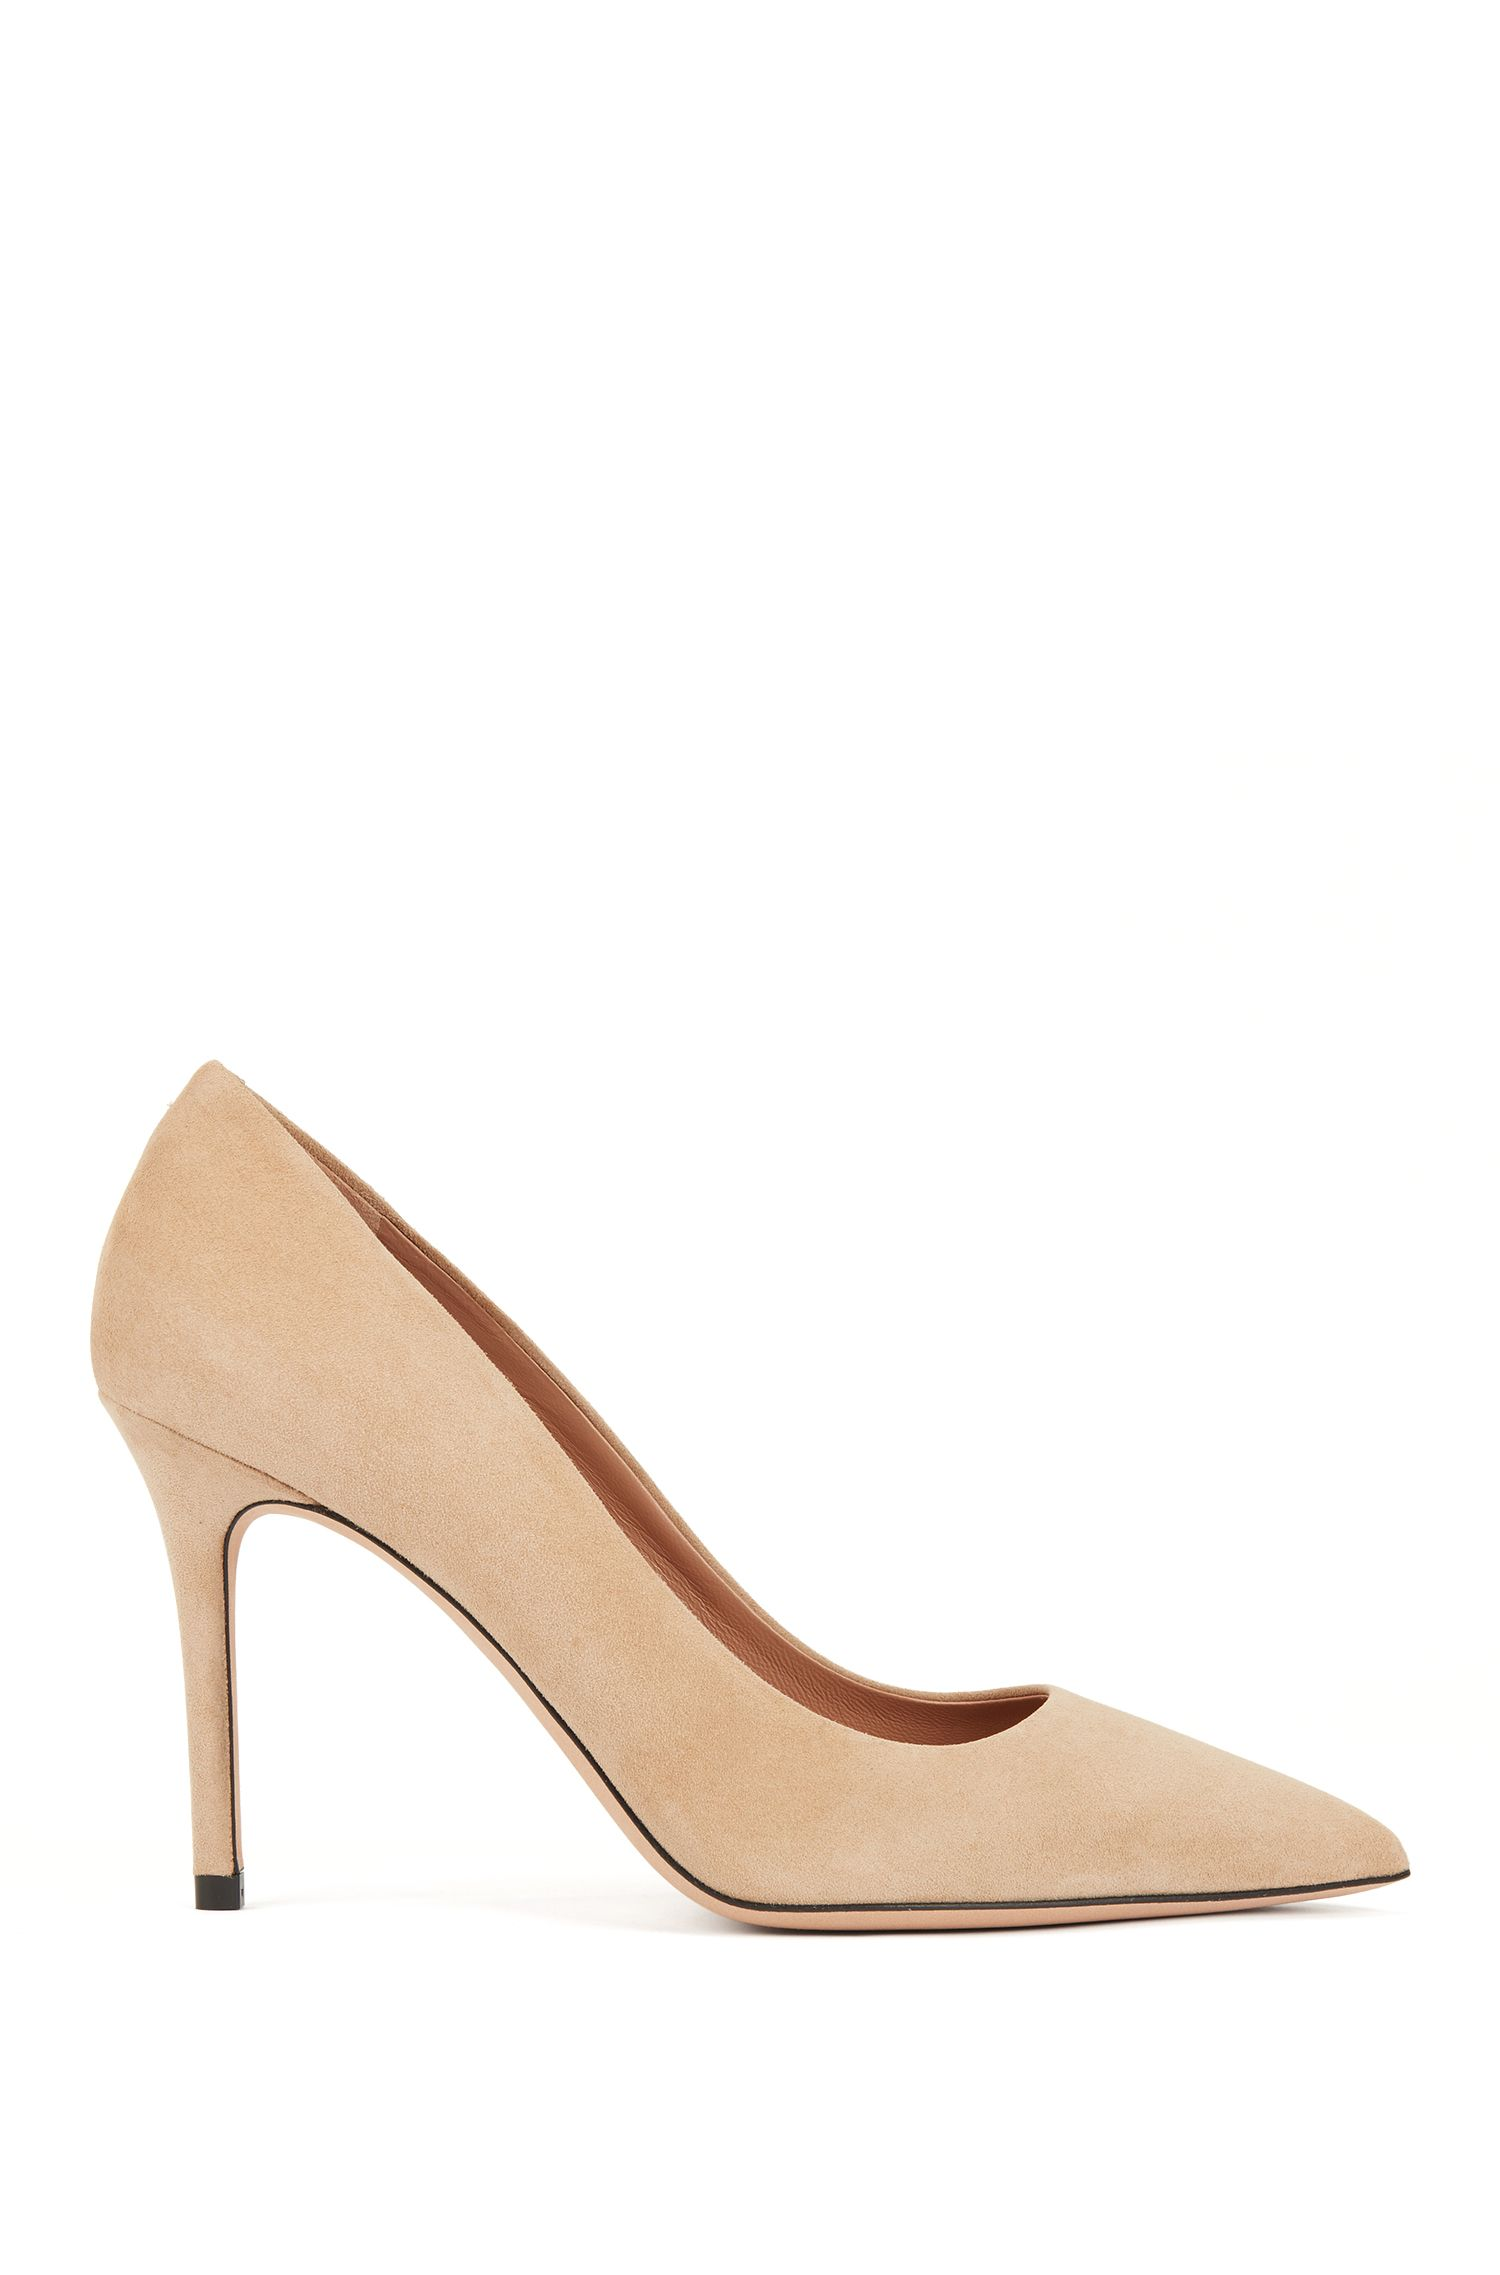 Pointed-toe court shoes in Italian suede , Light Beige